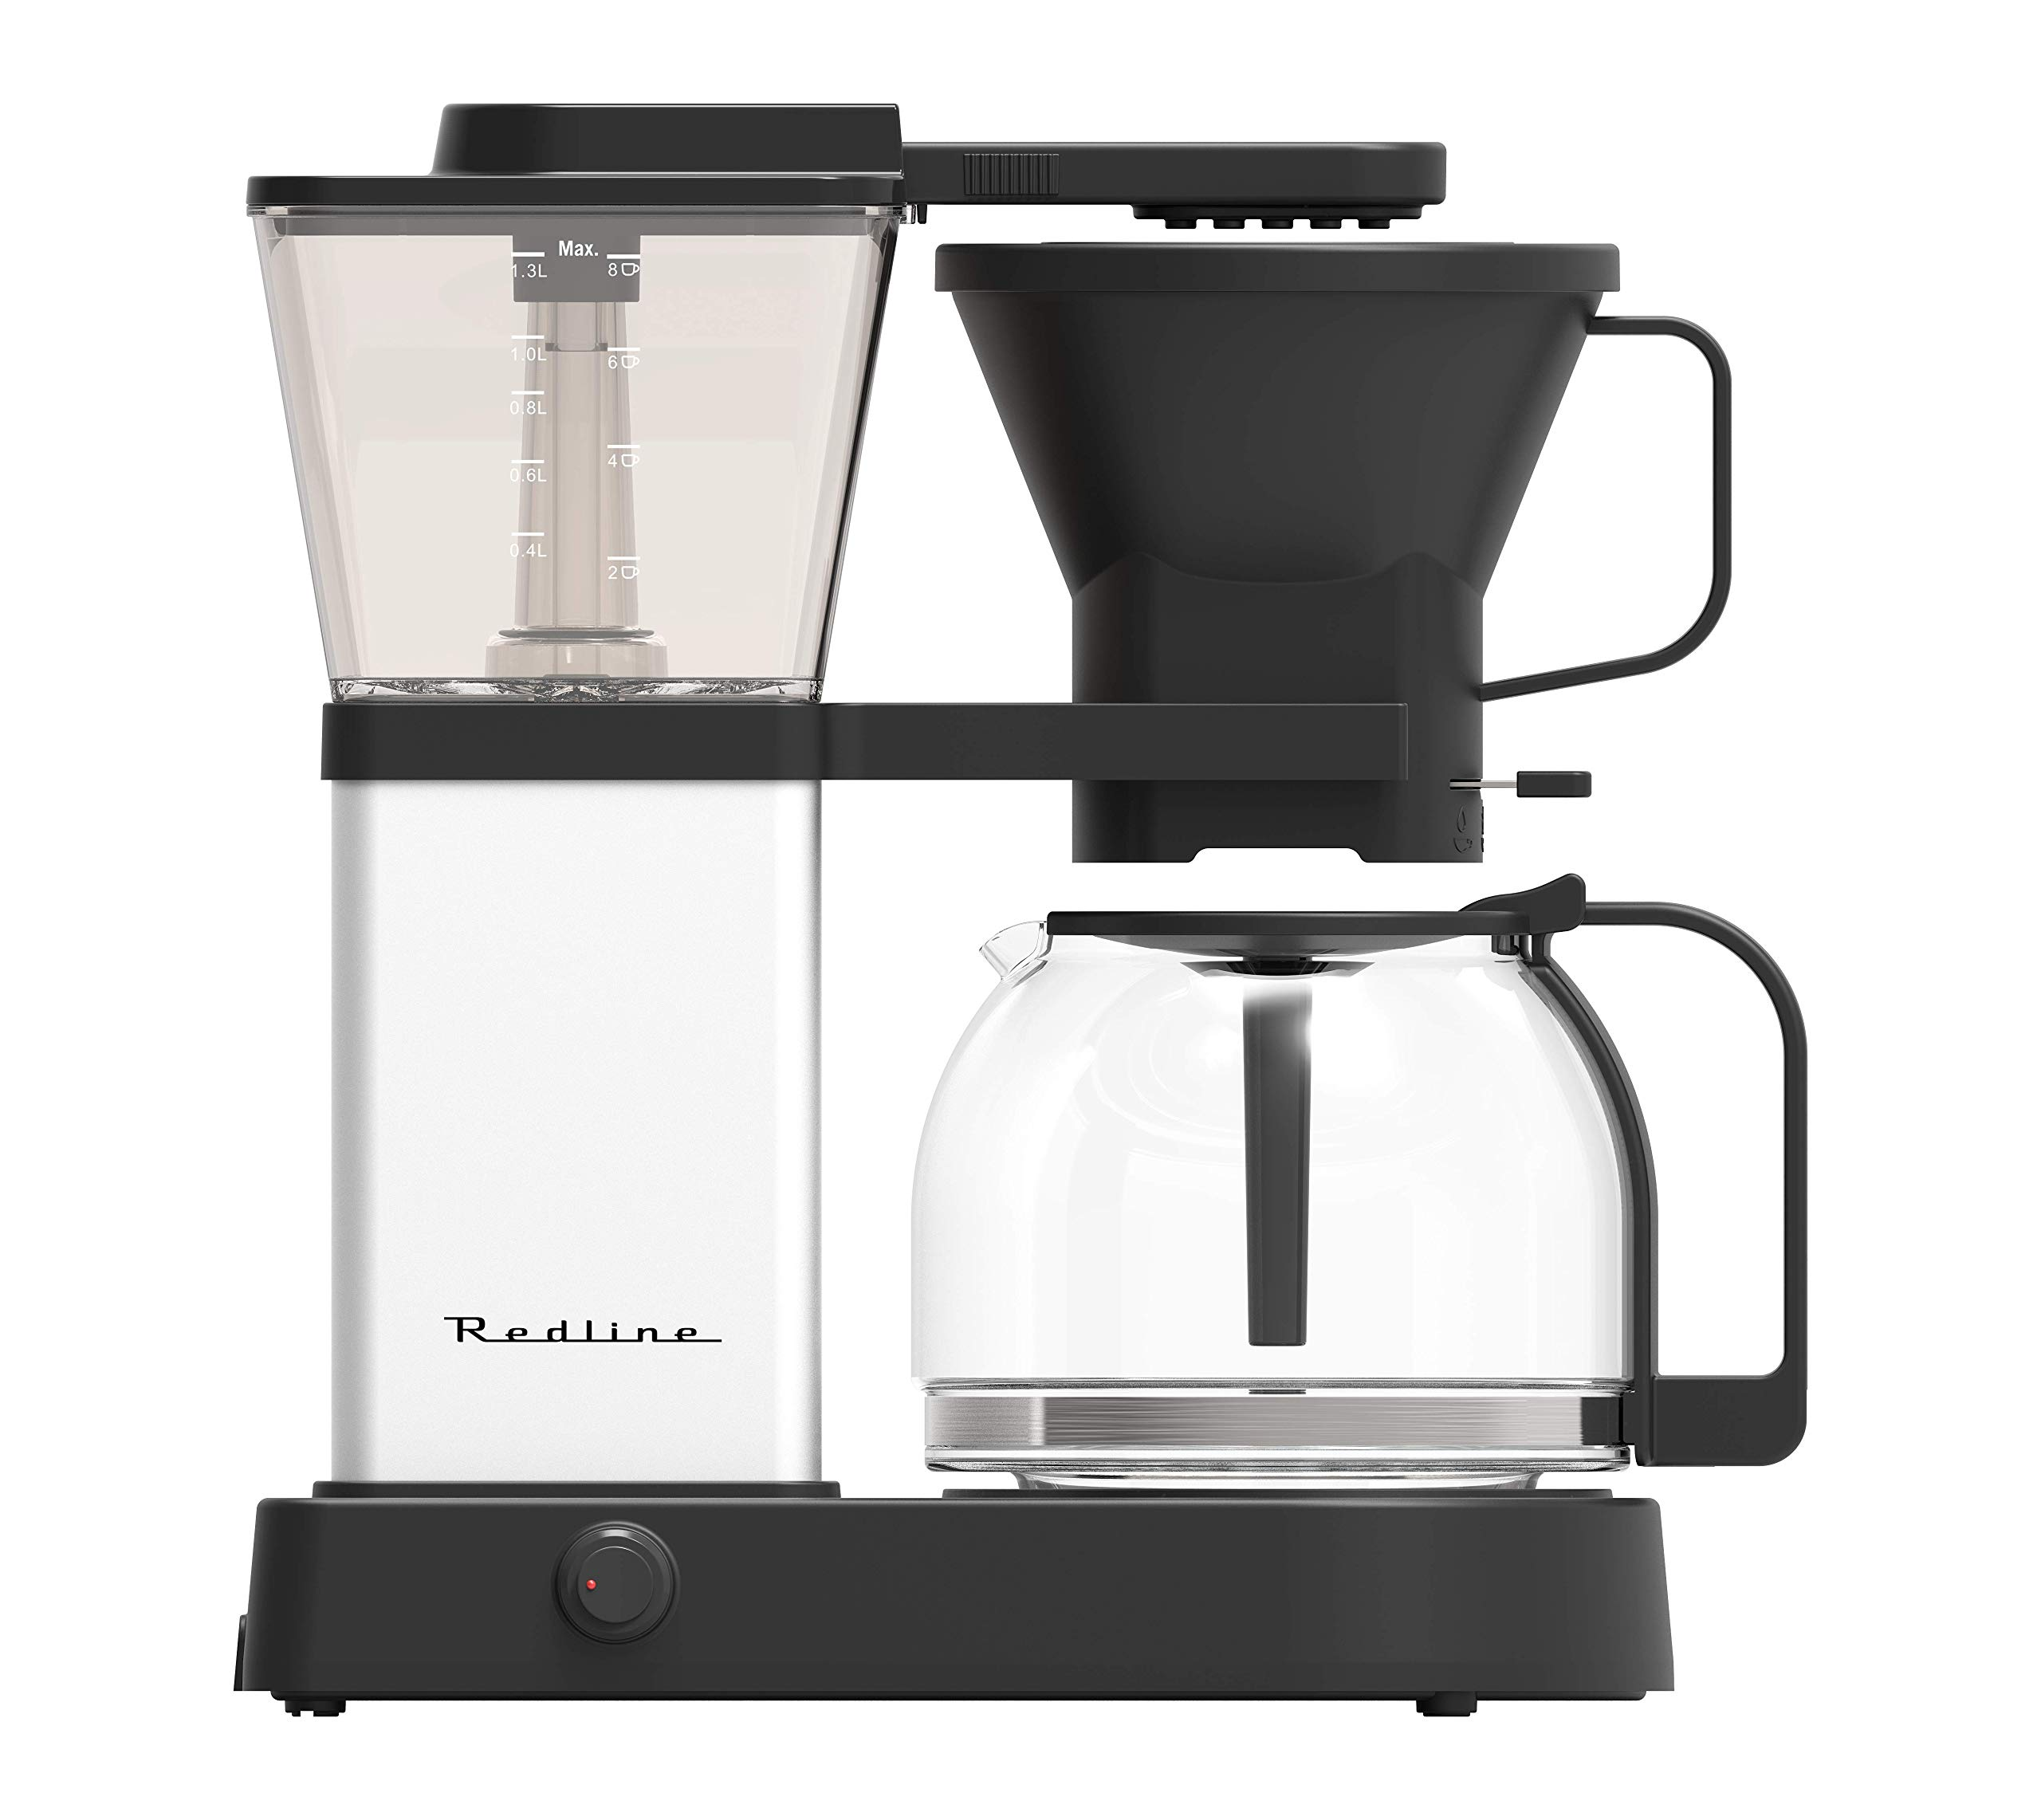 Redline MK1 8 Cup Coffee Brewer with Glass Carafe, Hot Plate and Pre-Infusion Mode (Summer 2018 Refresh) by Redline Coffee (Image #1)